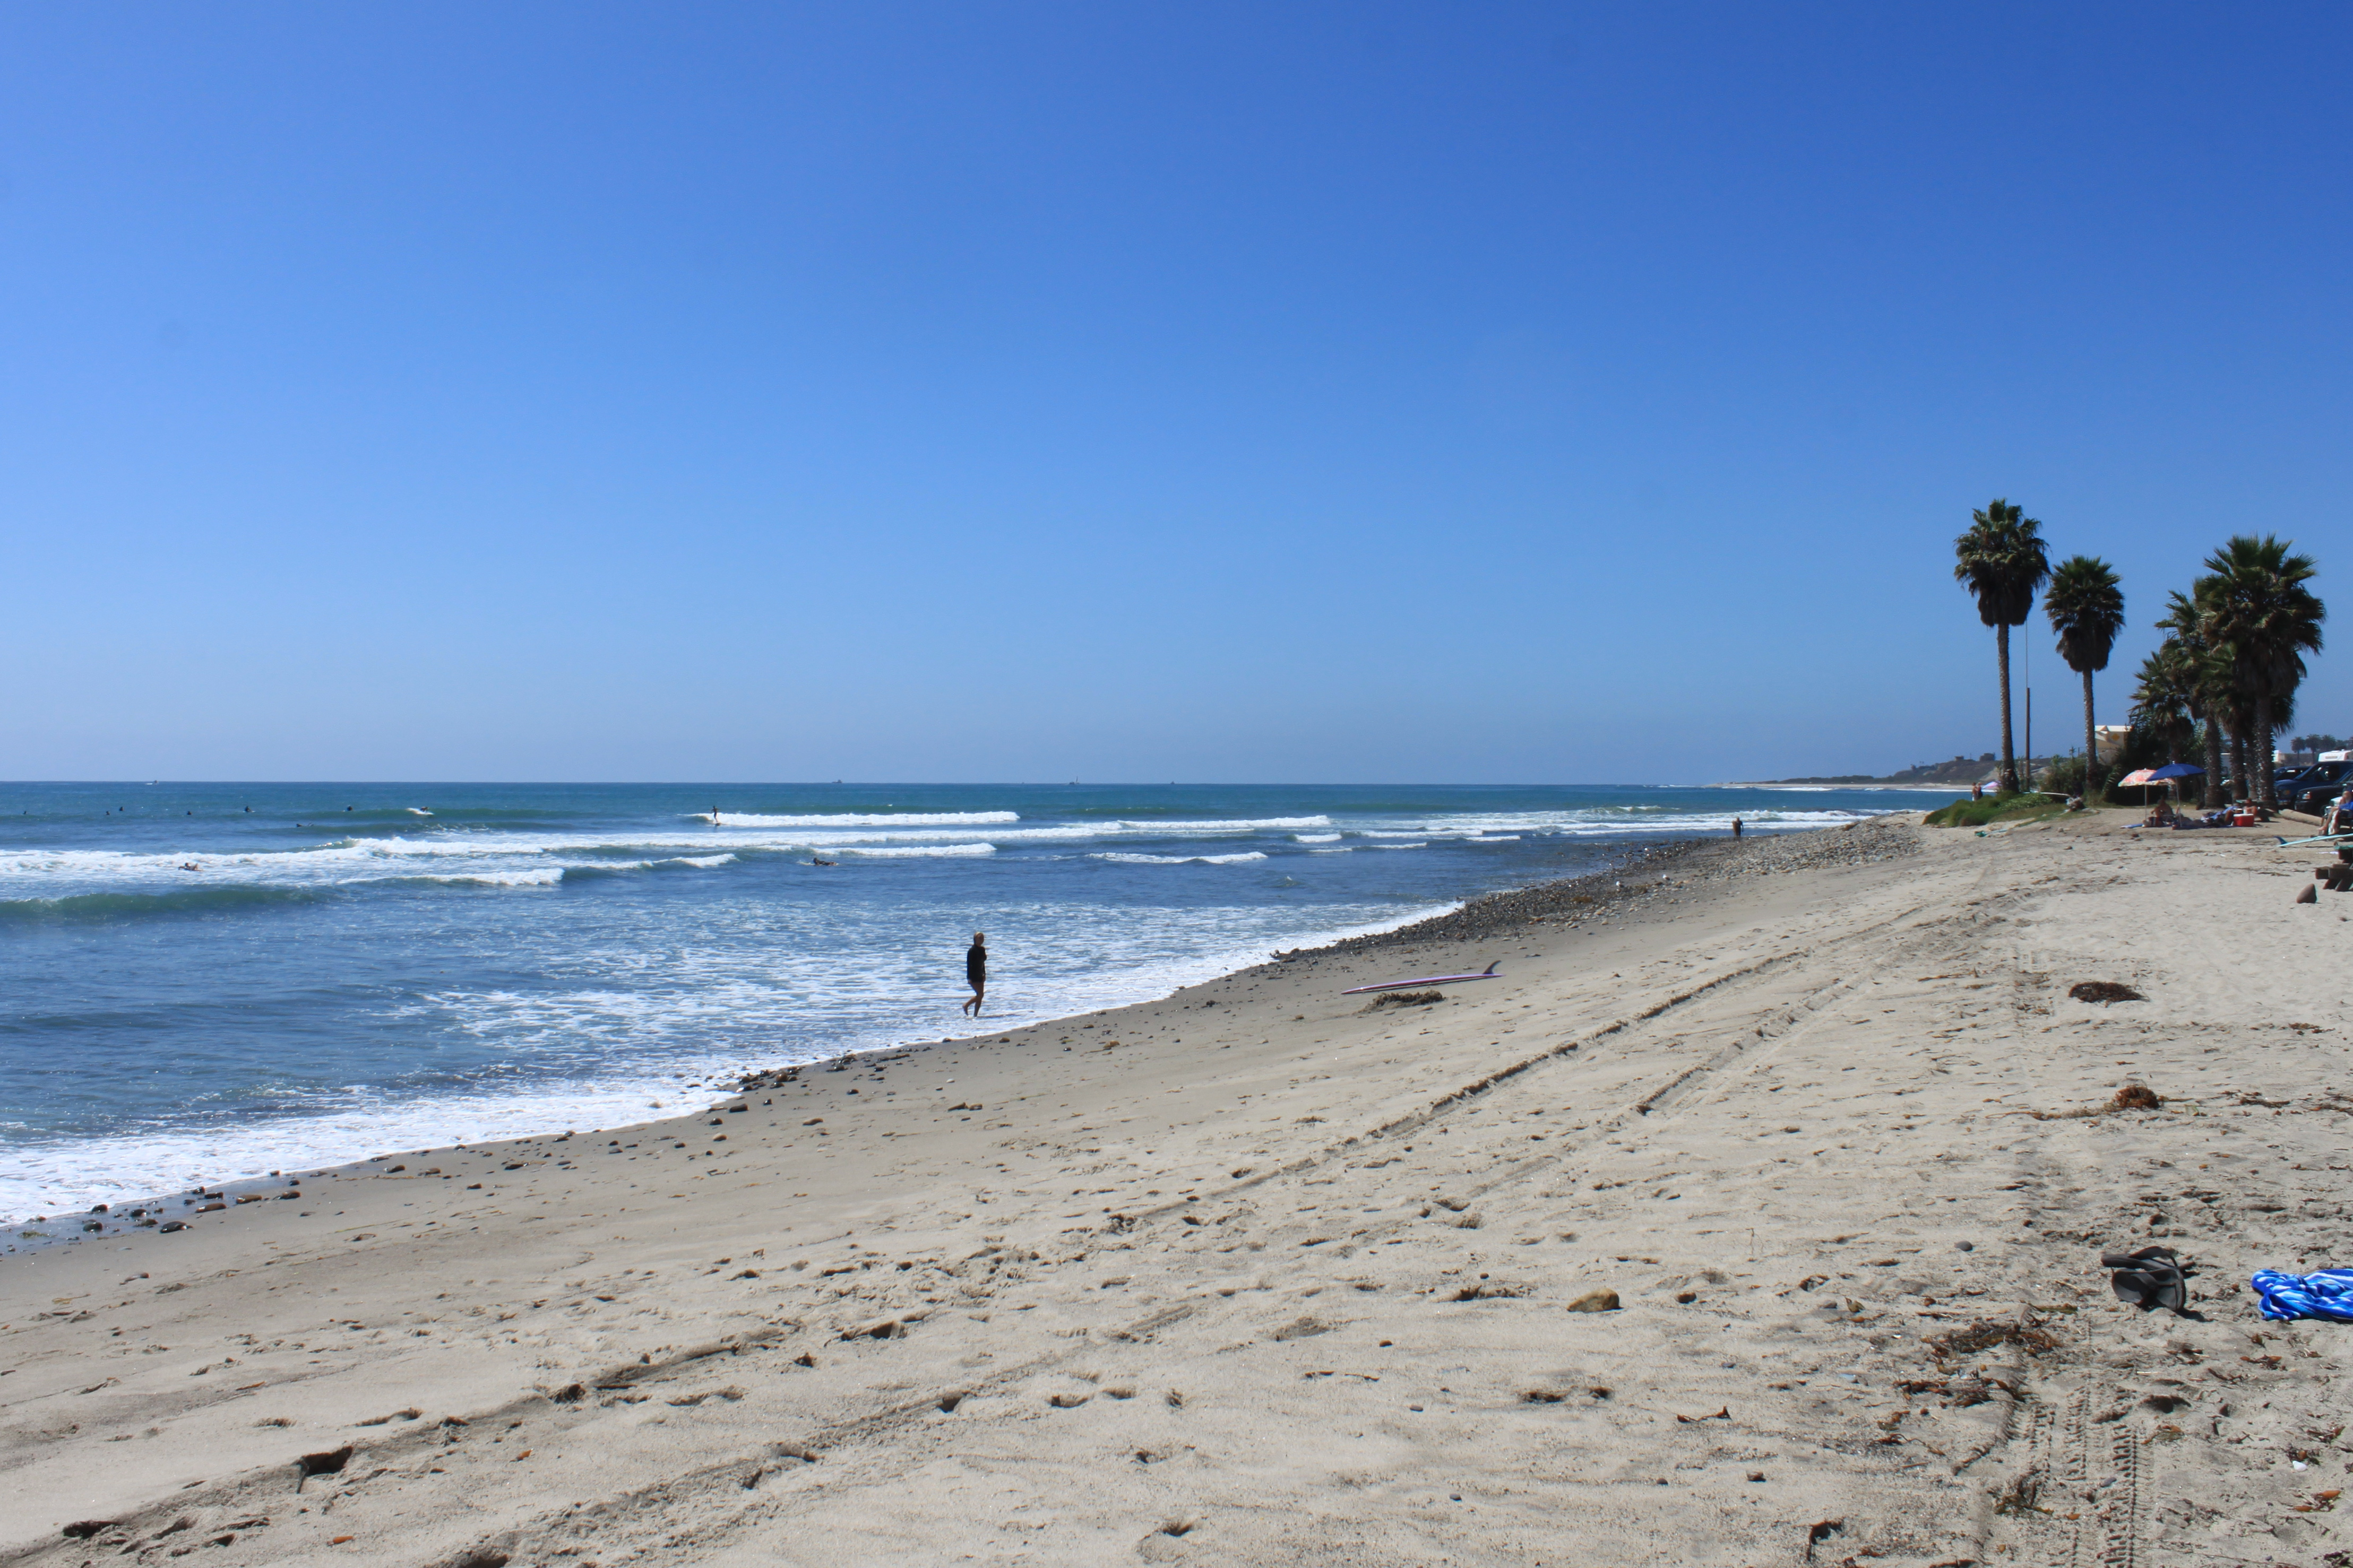 Where it all begins for most SoCal surfers: San Onofre state park.